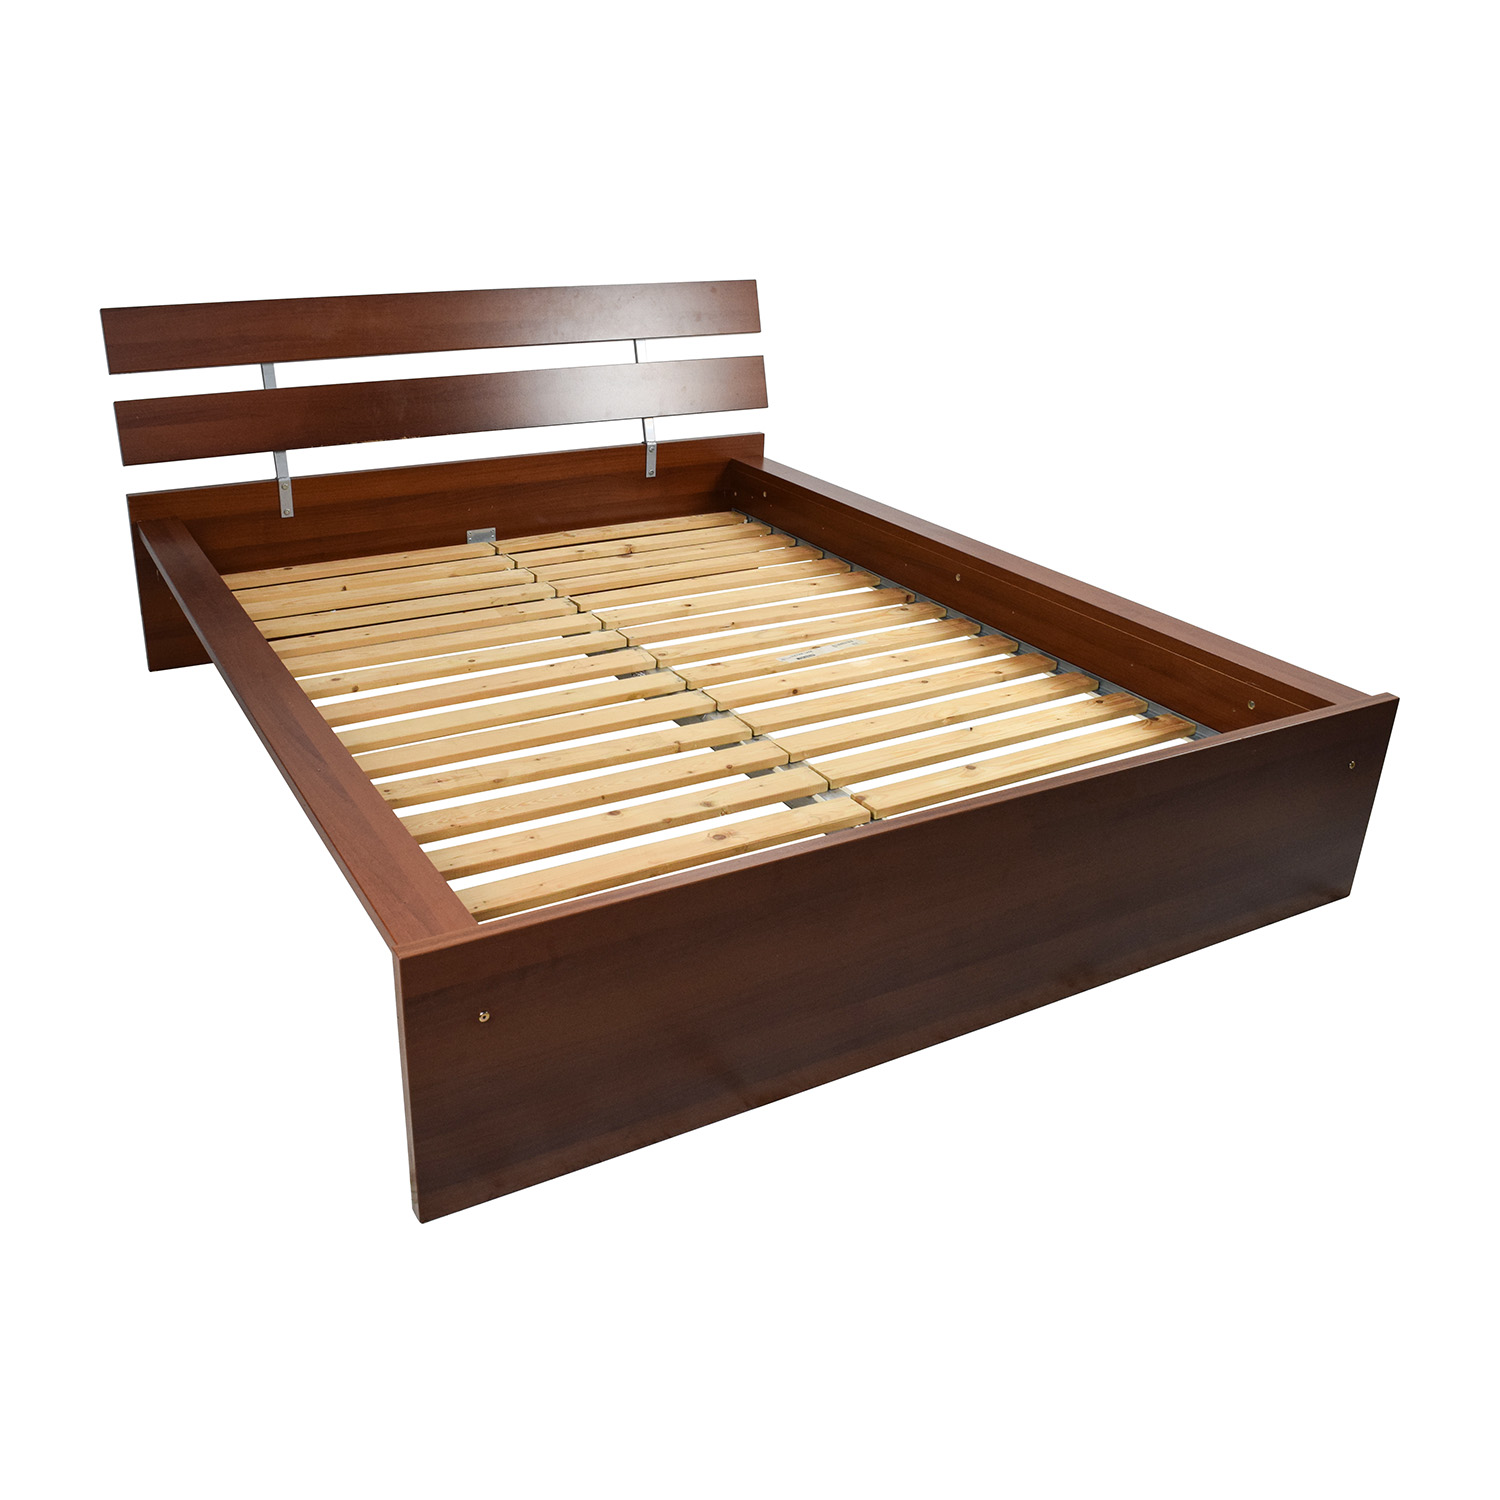 64 Off Ikea Ikea Brown Queen Bed Frame Beds